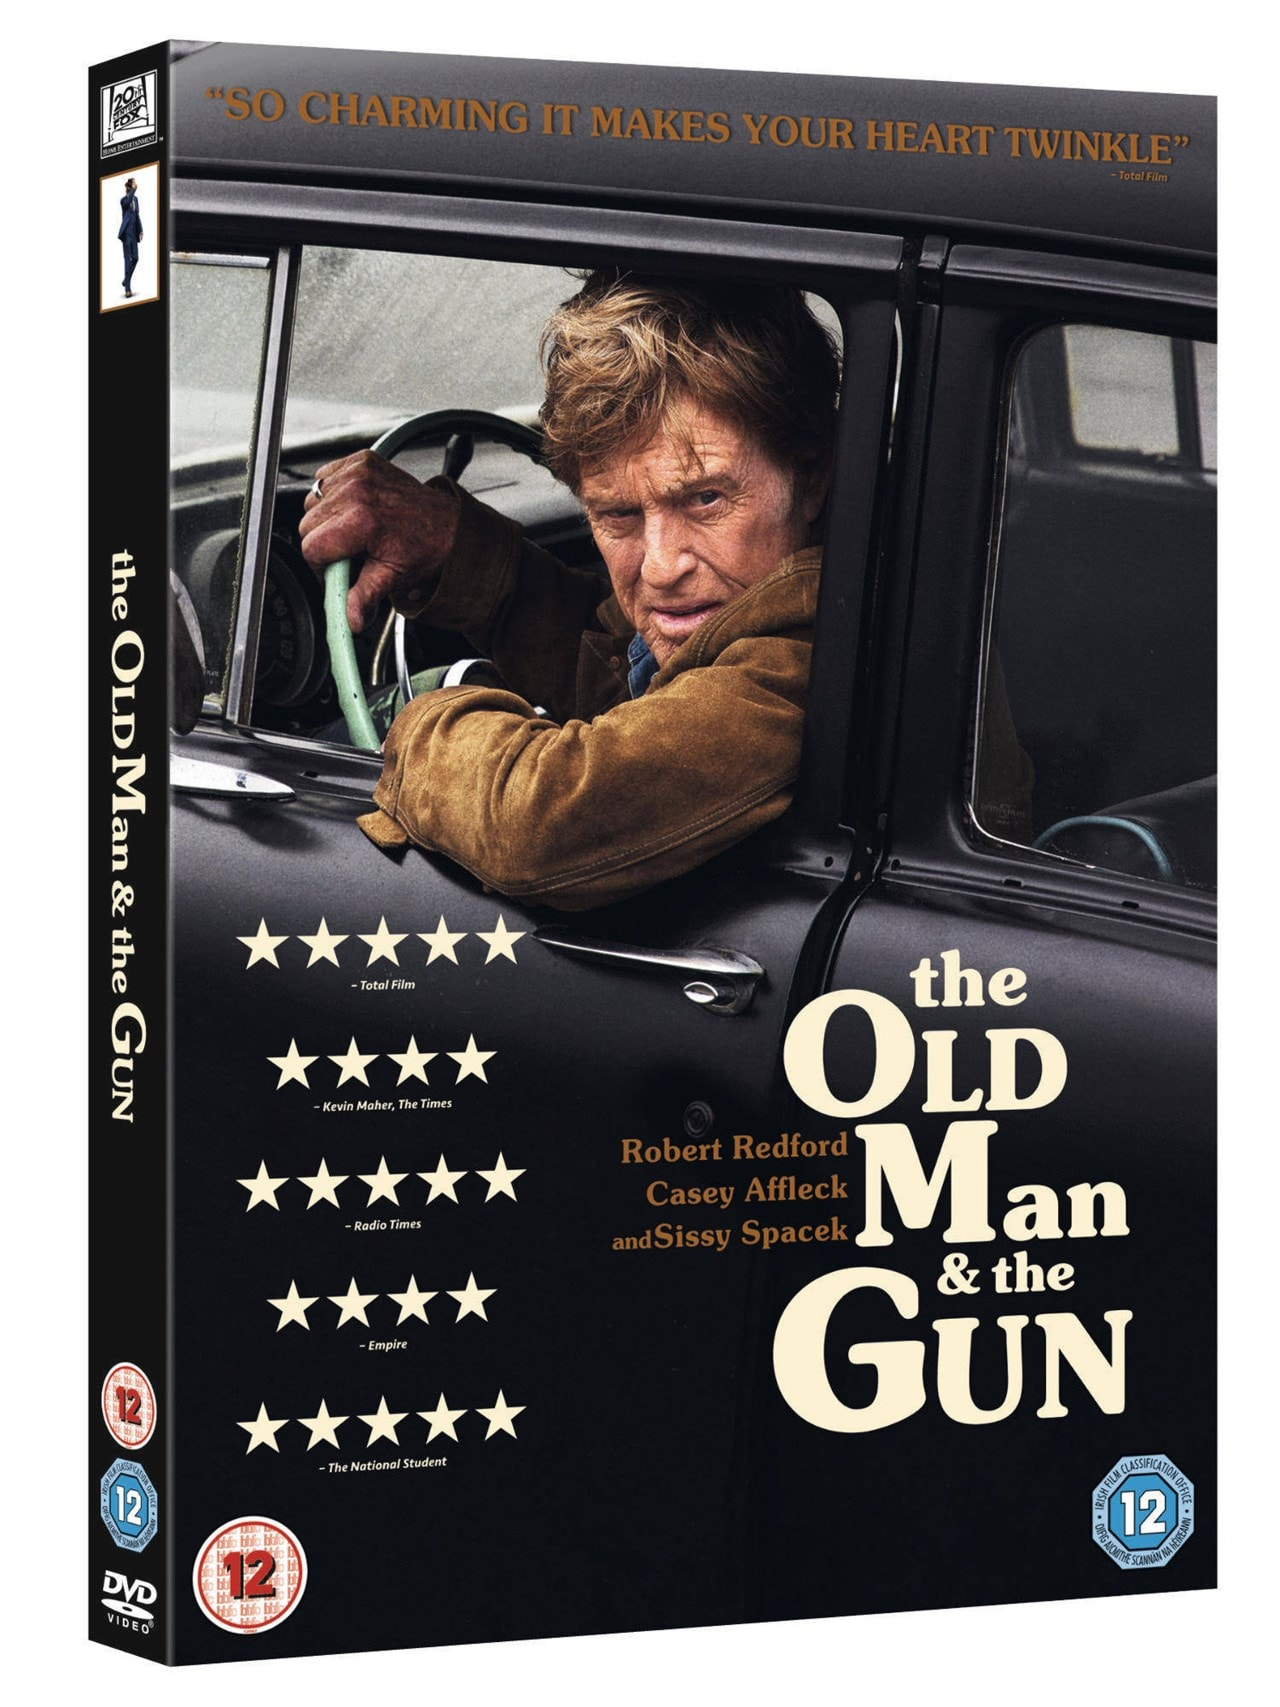 The Old Man and the Gun - 2